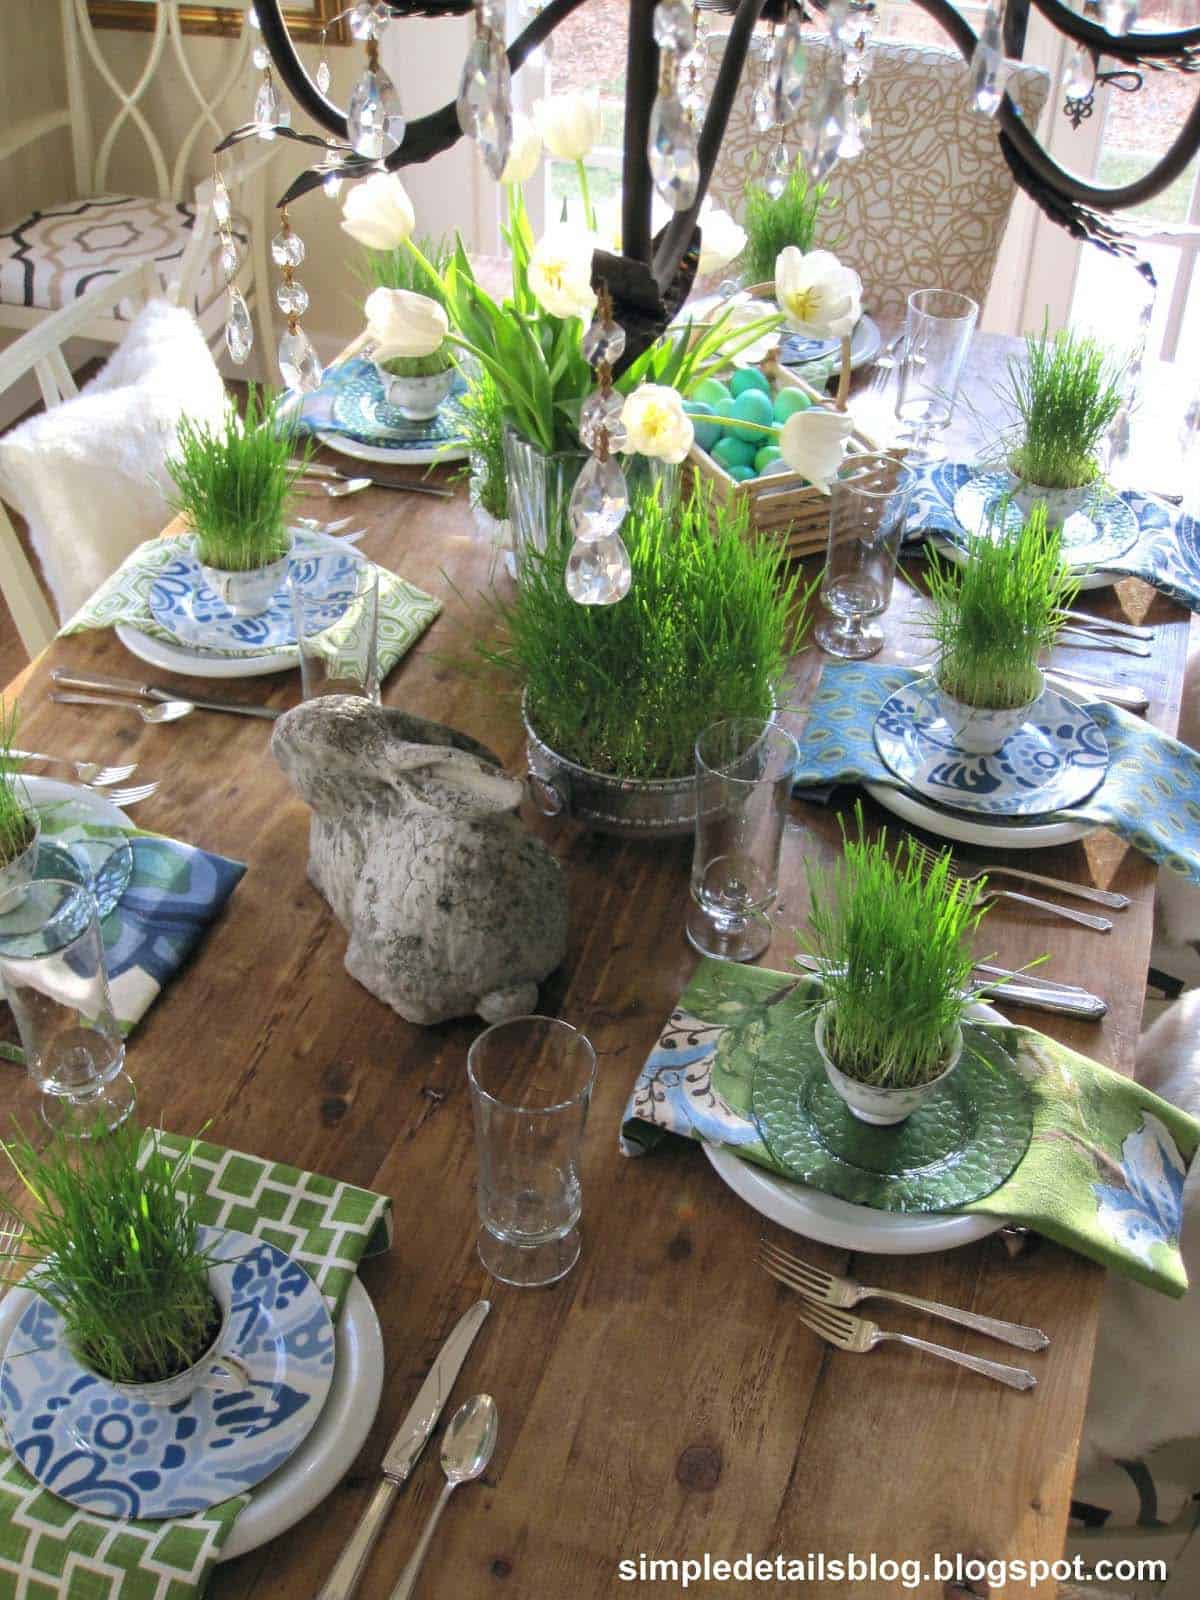 Inspiring Easter Table Centerpiece Ideas-16-1 Kindesign